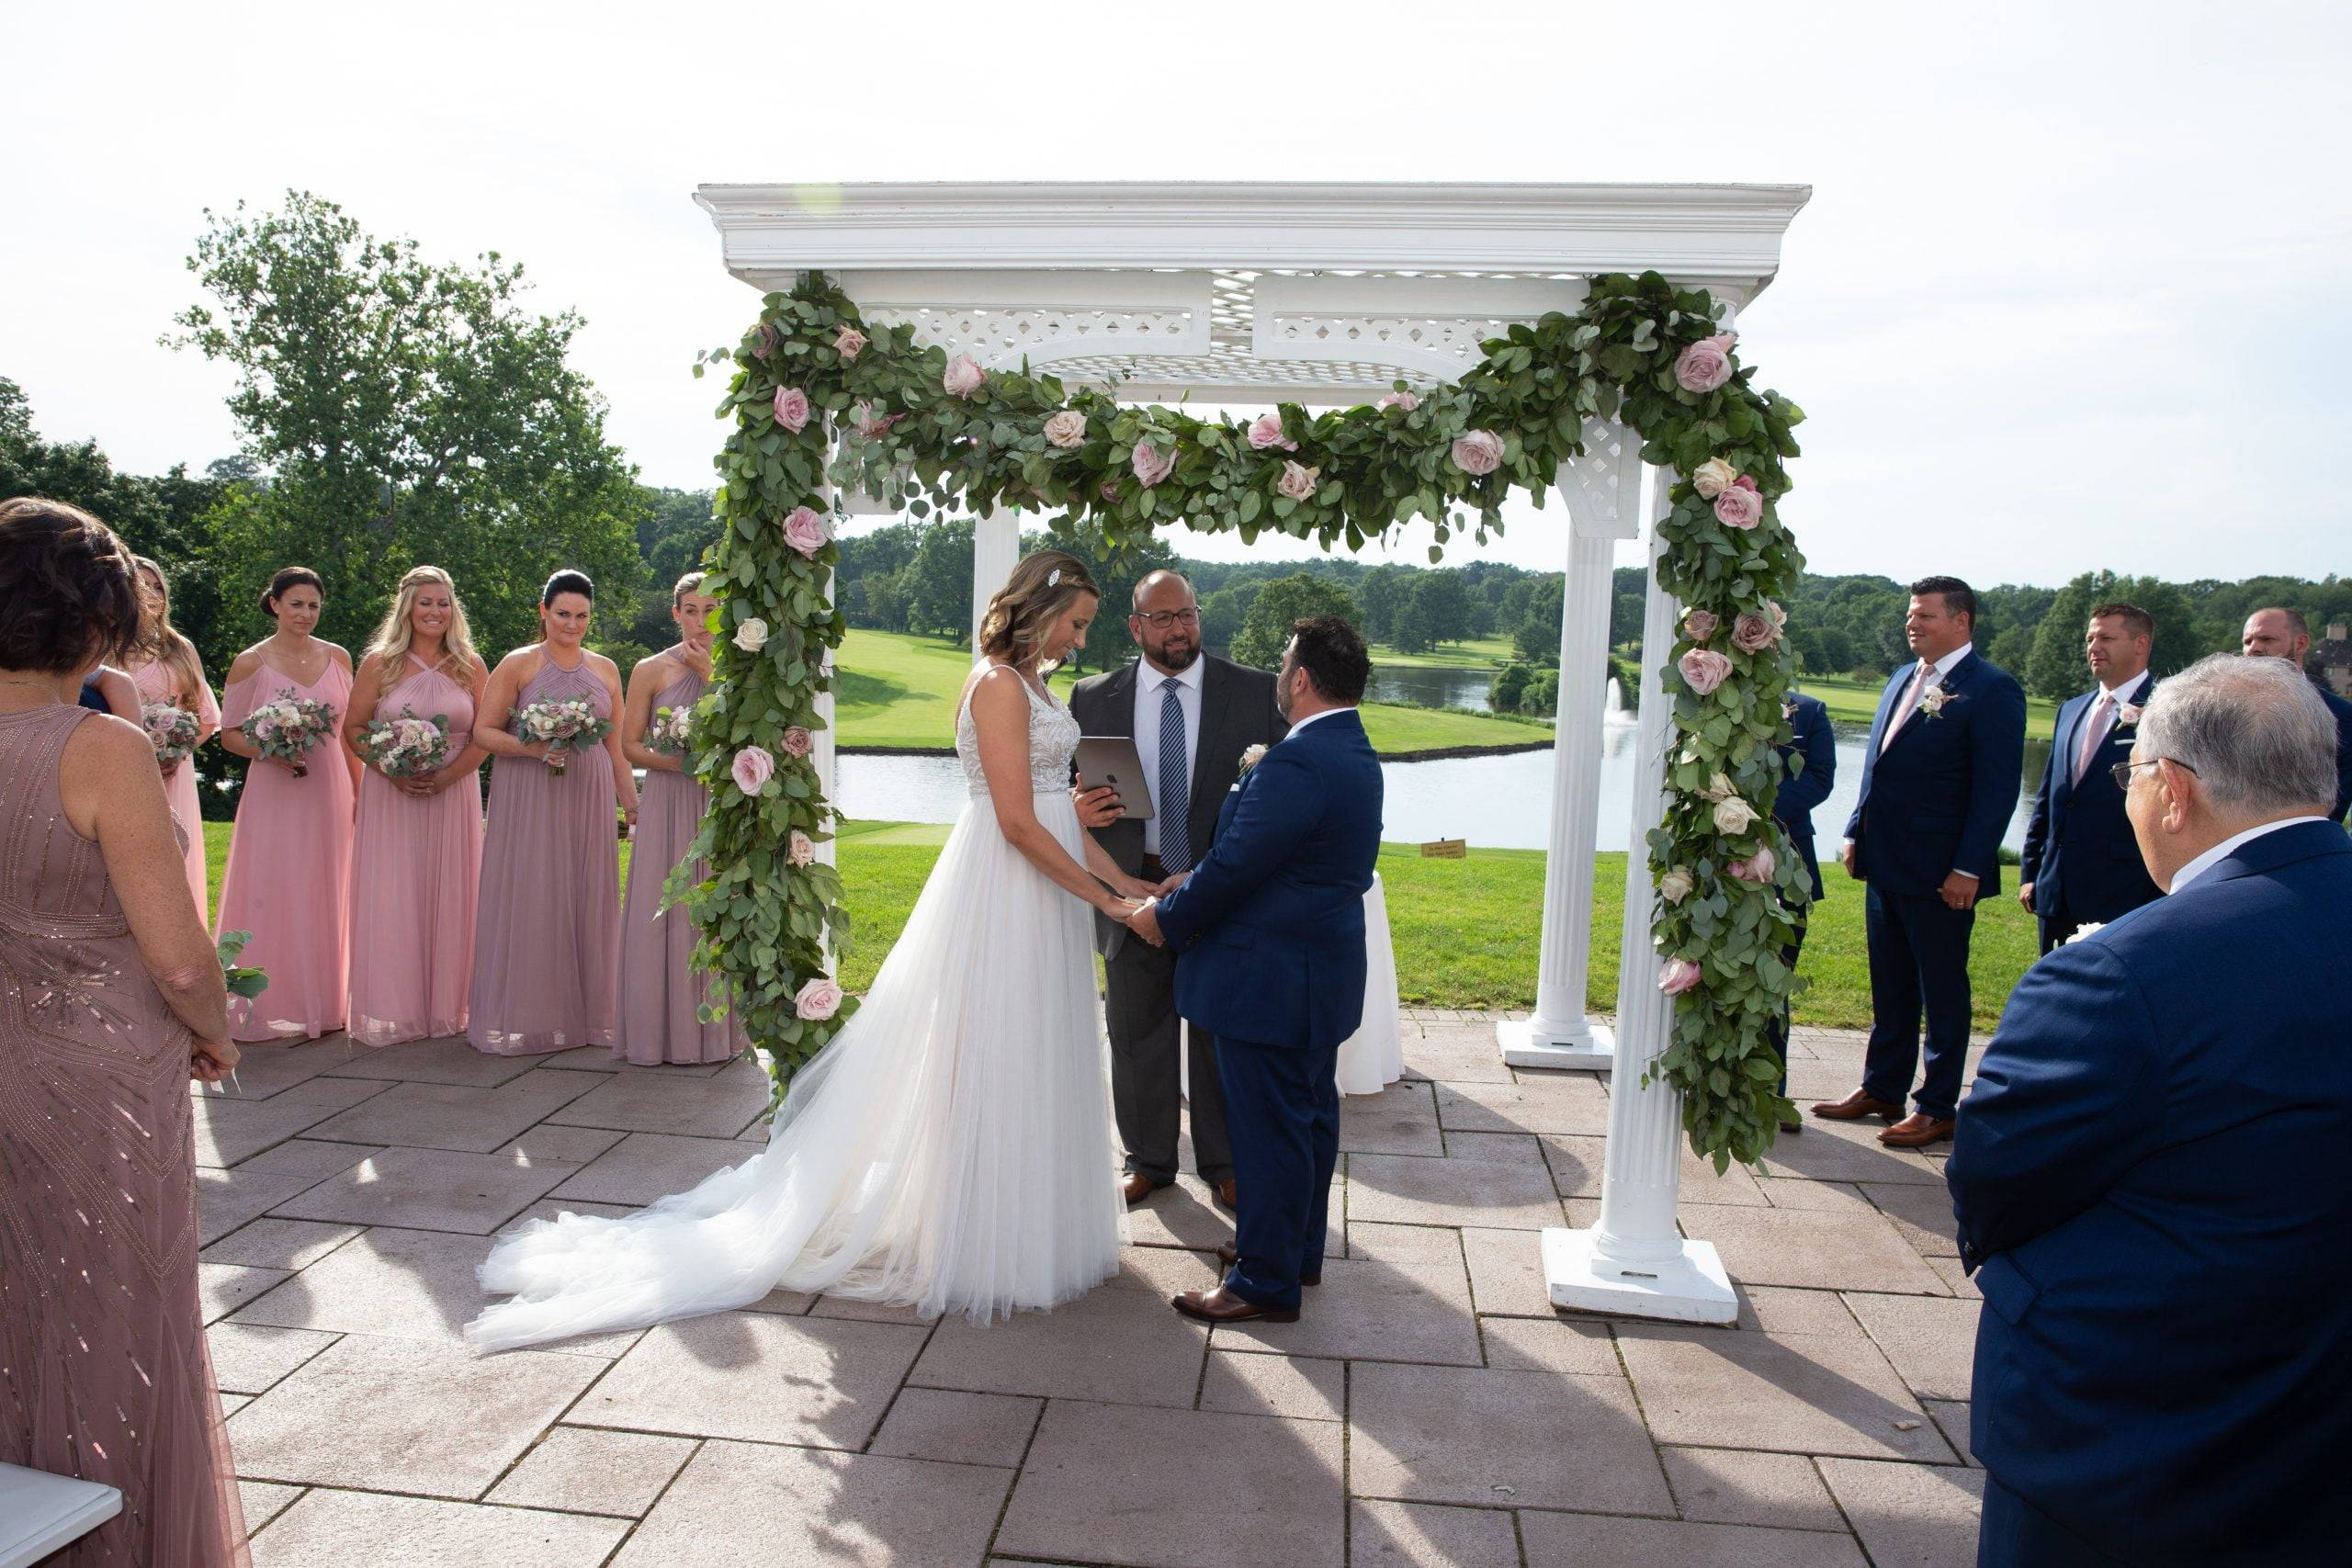 Brooklake bride and groom exchanging vows outside